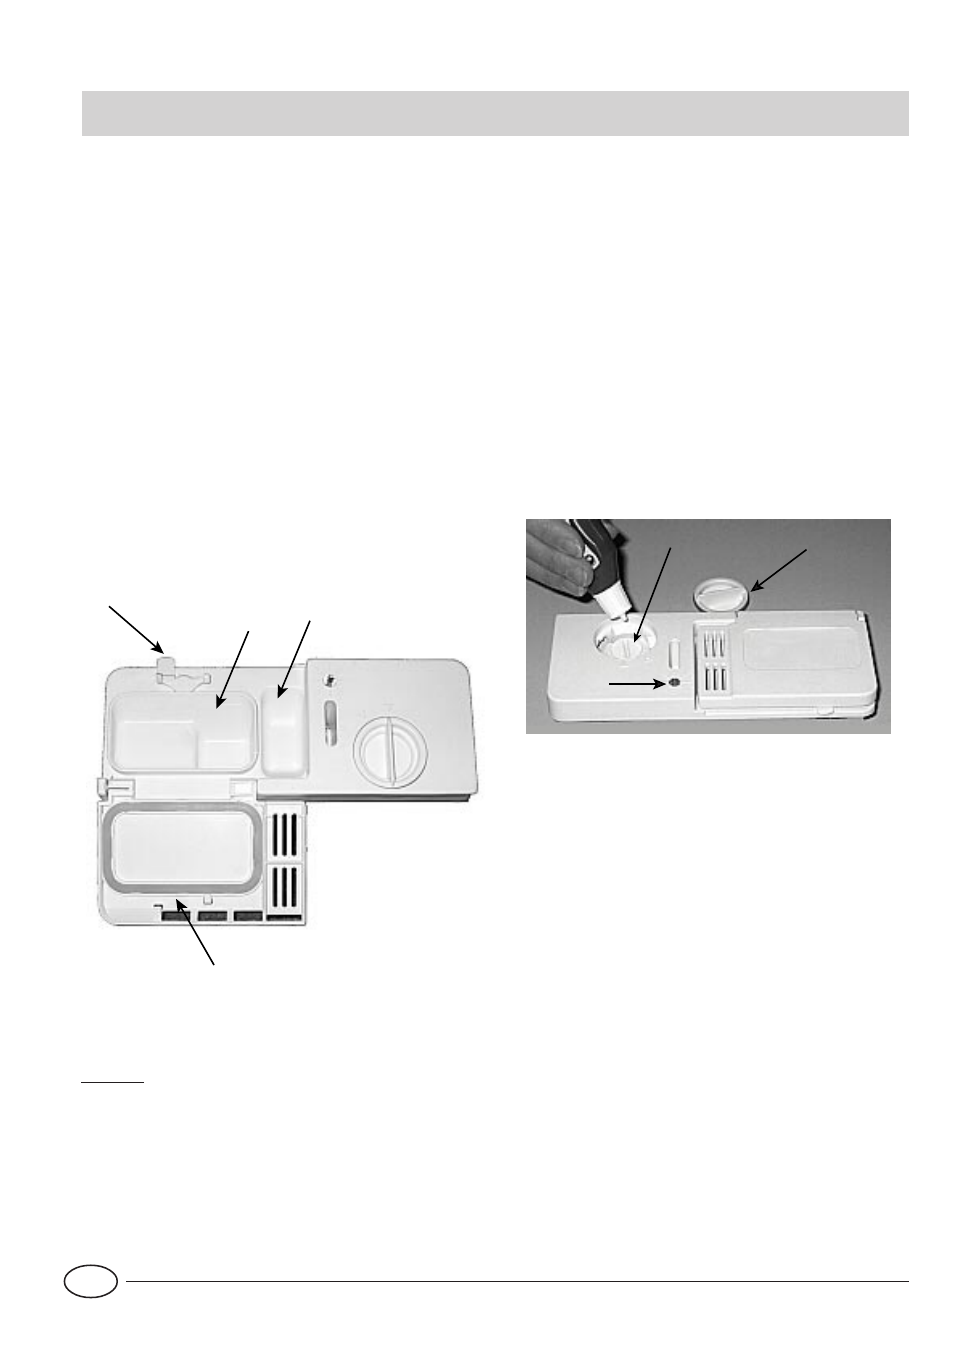 Detergent And Rinse Aid Indesit Di 620 User Manual Page 6 16 Original Mode